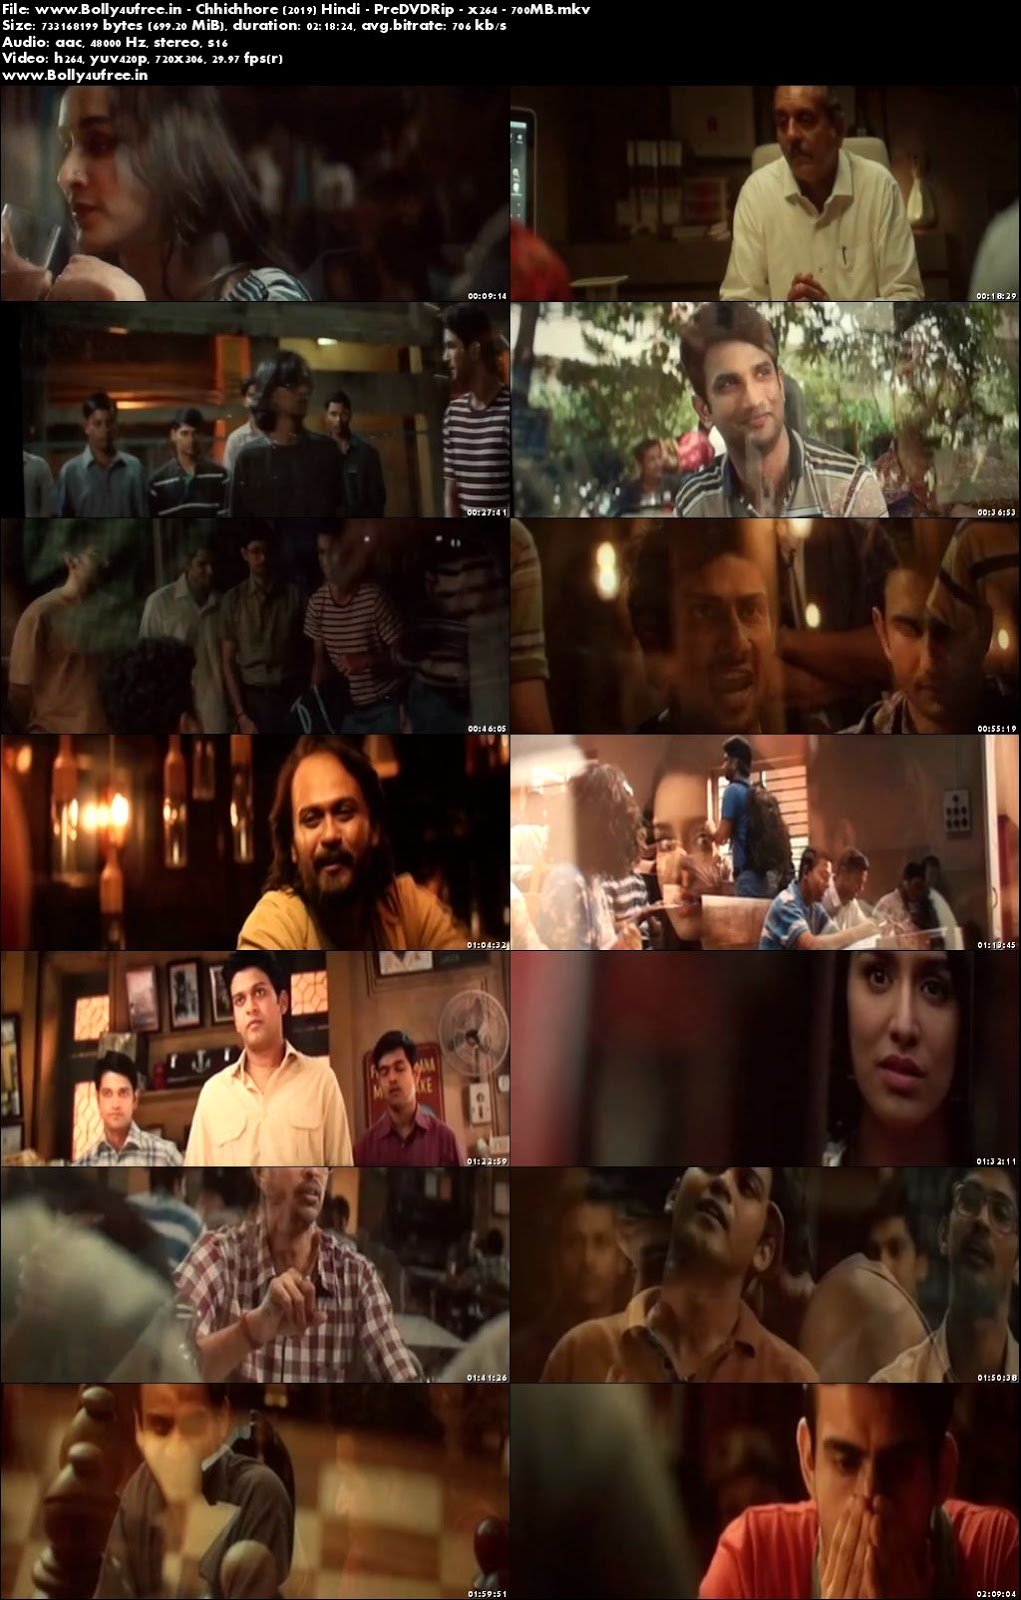 Chhichhore 2019 Full Hindi Movie Download 400MB 480p Pre DVDRip